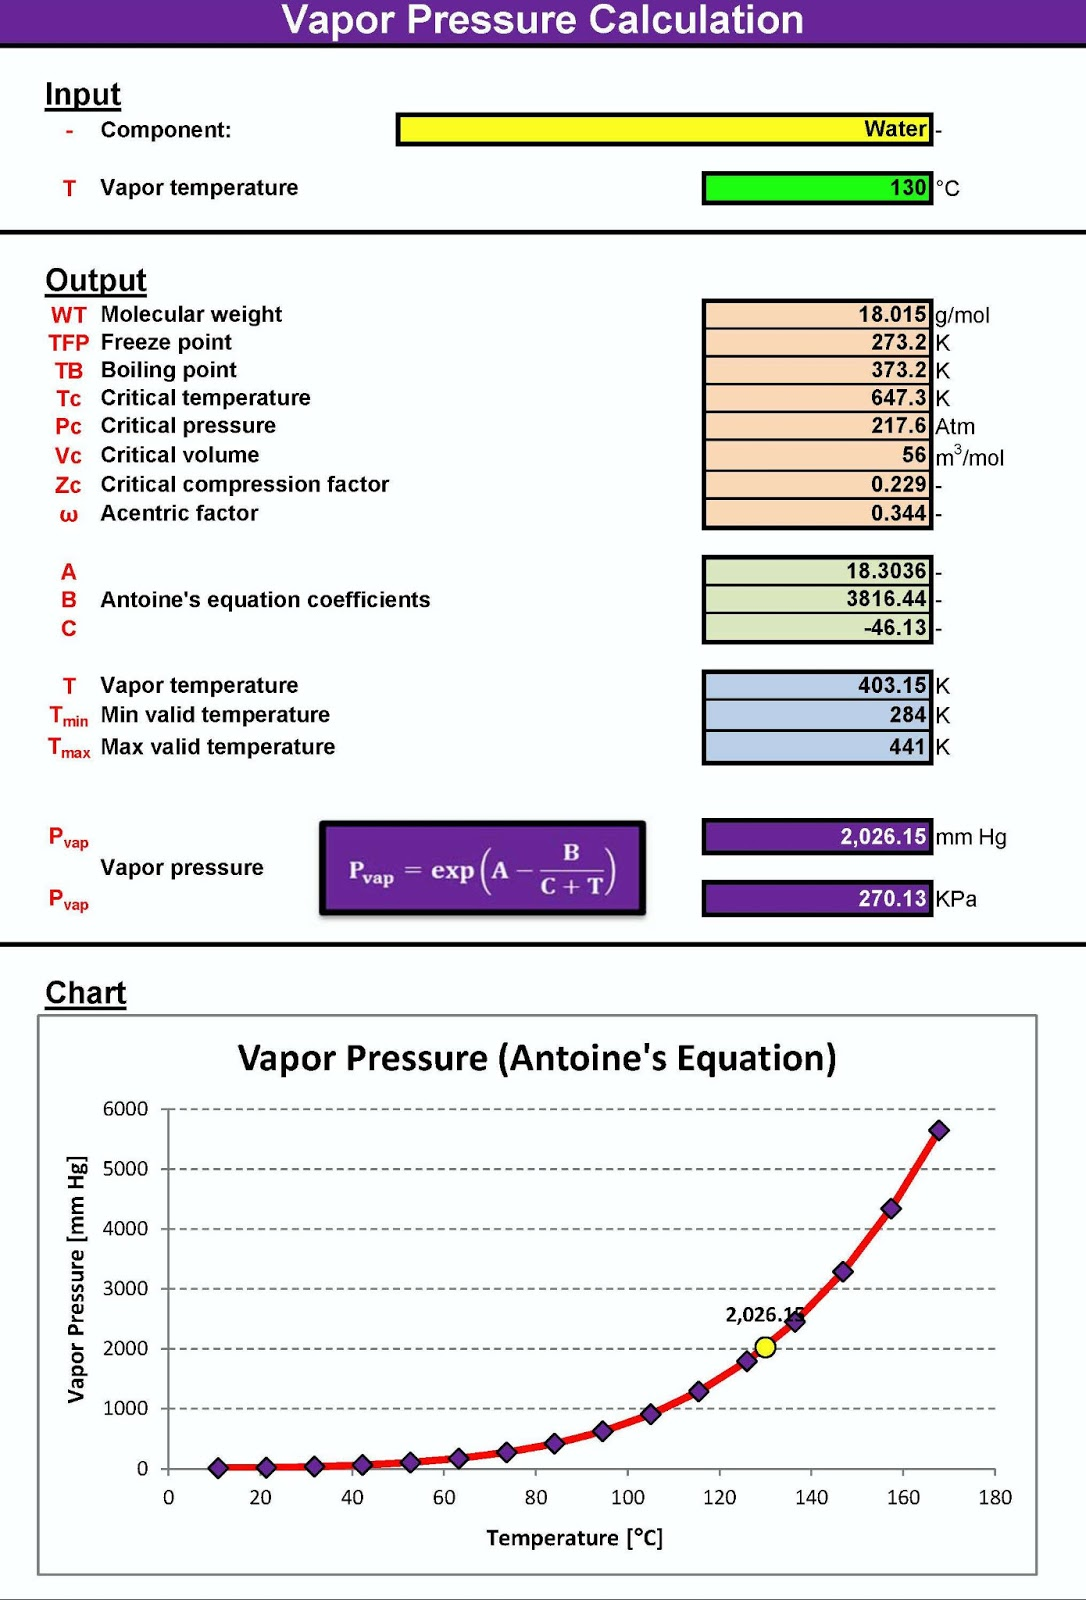 Vapor Pressure Calculation